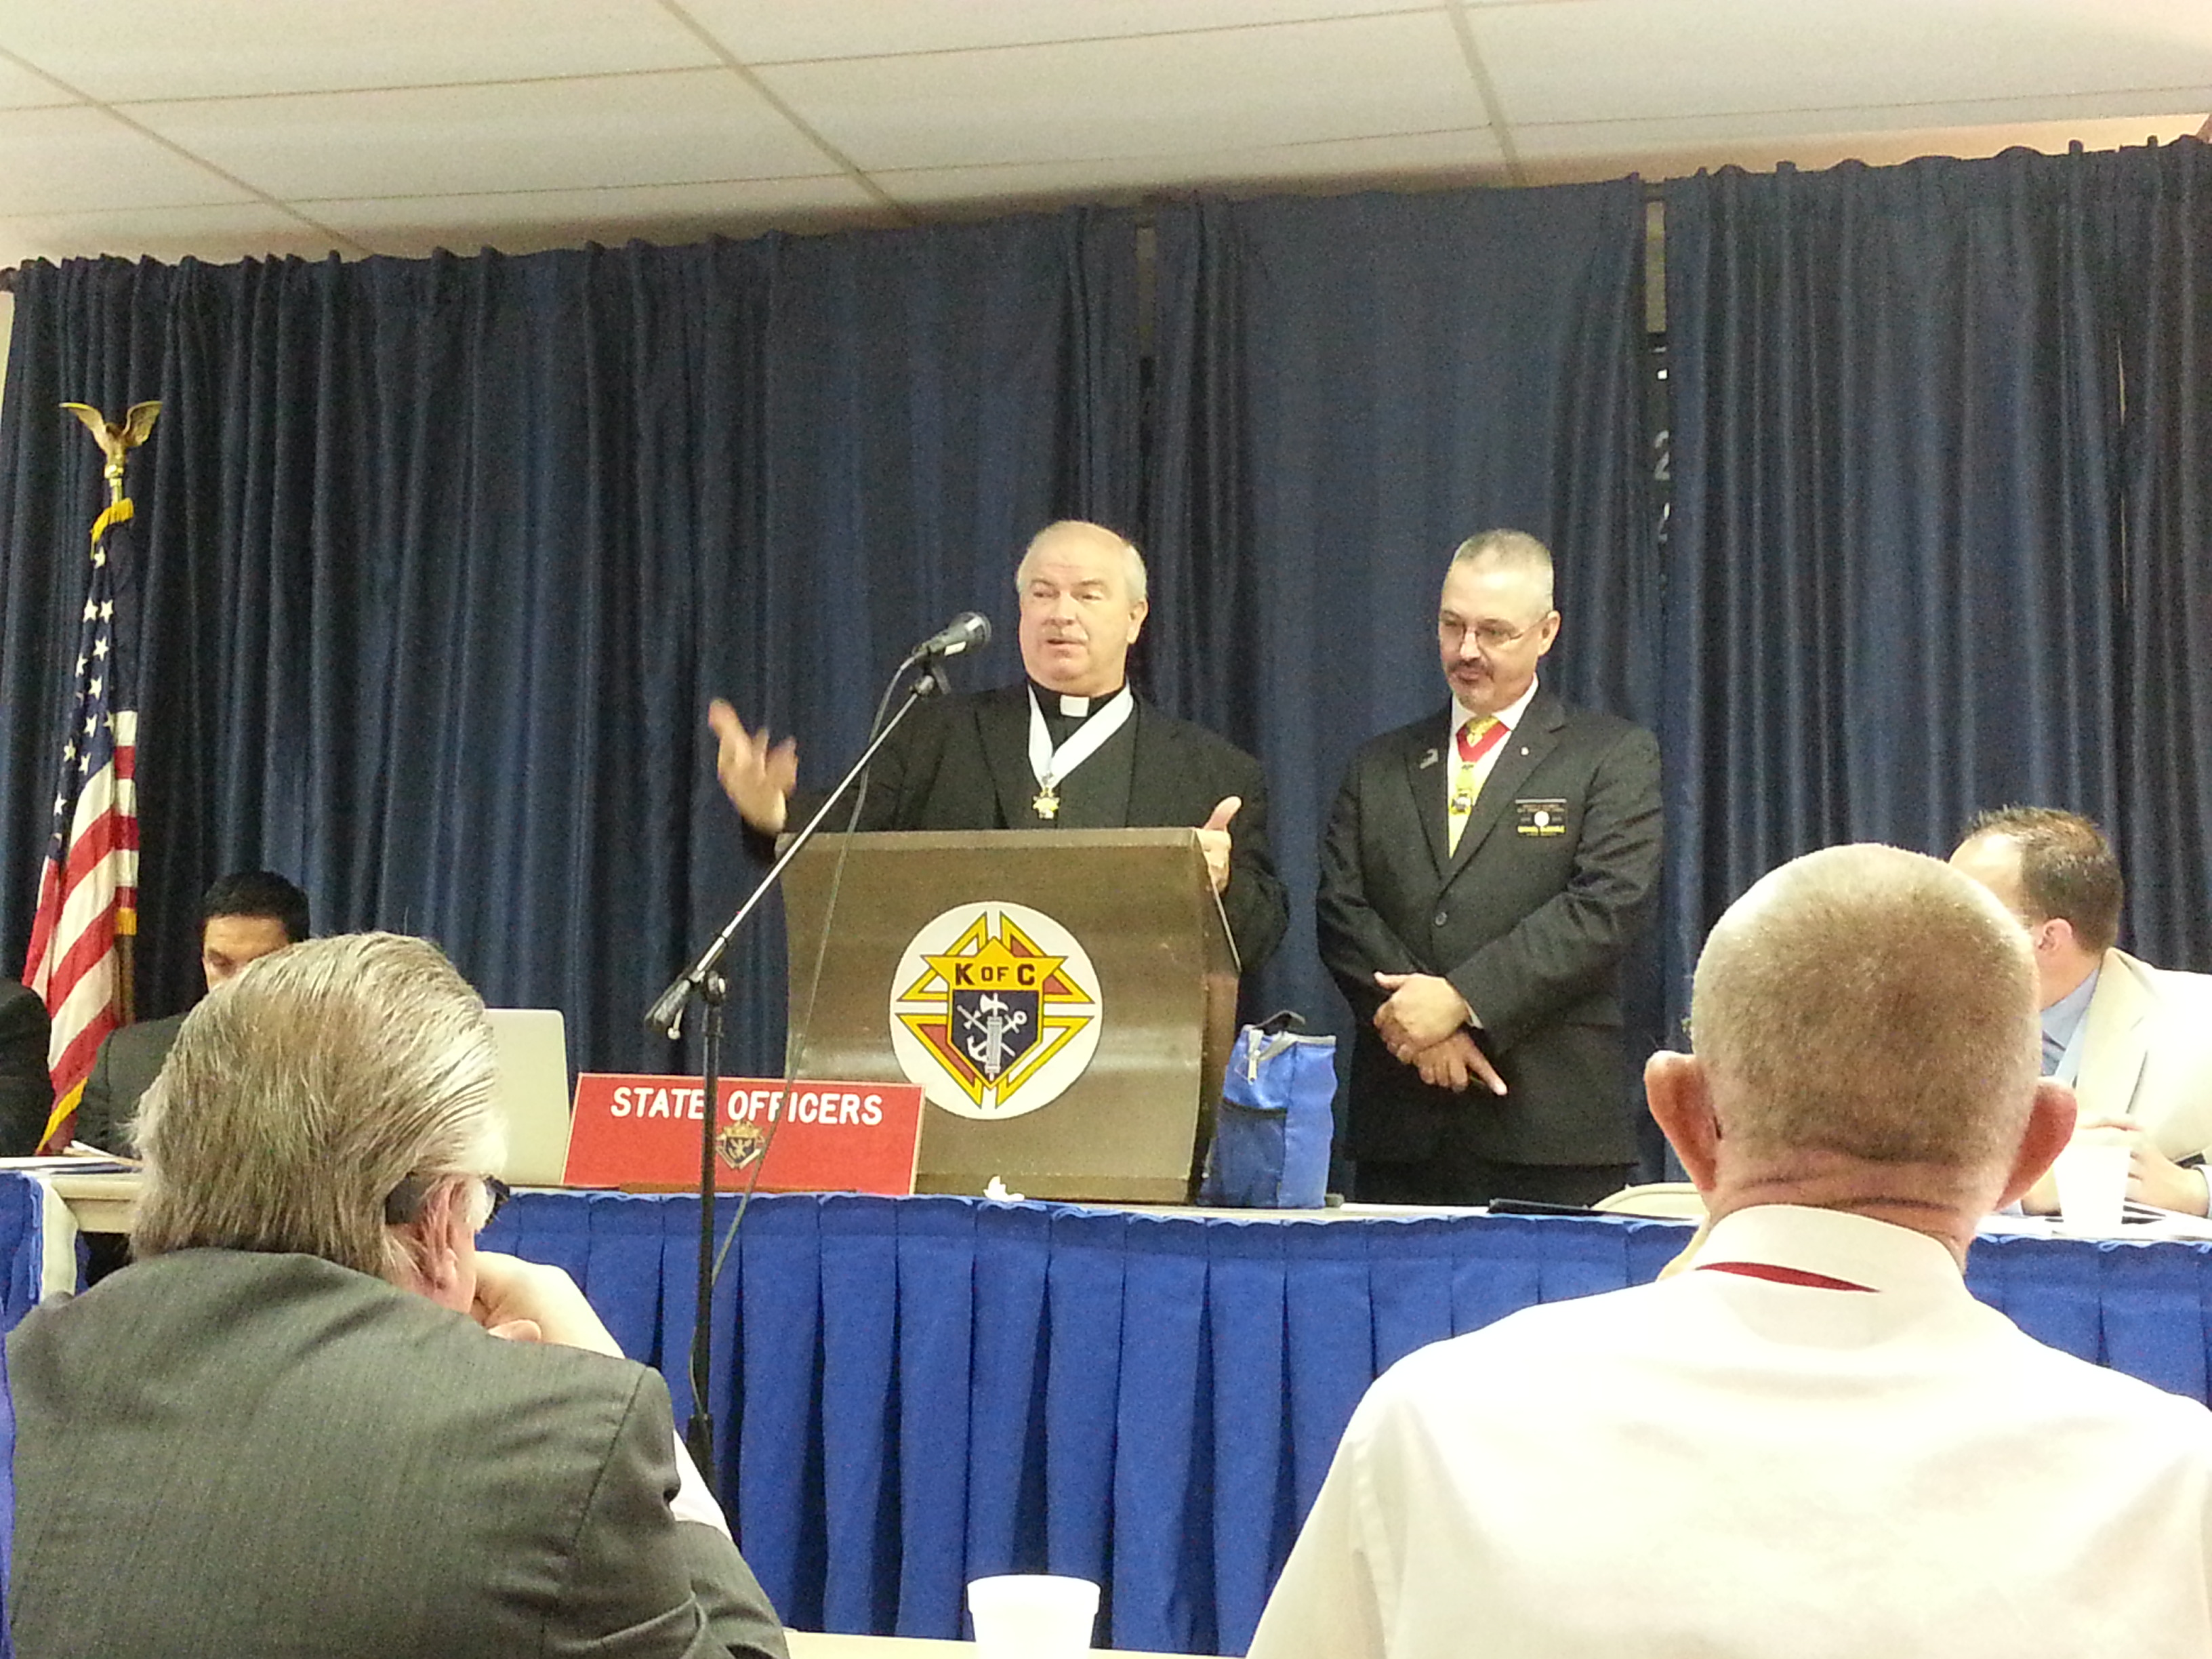 2015 WV Knights of Columbus Convention (31).jpg